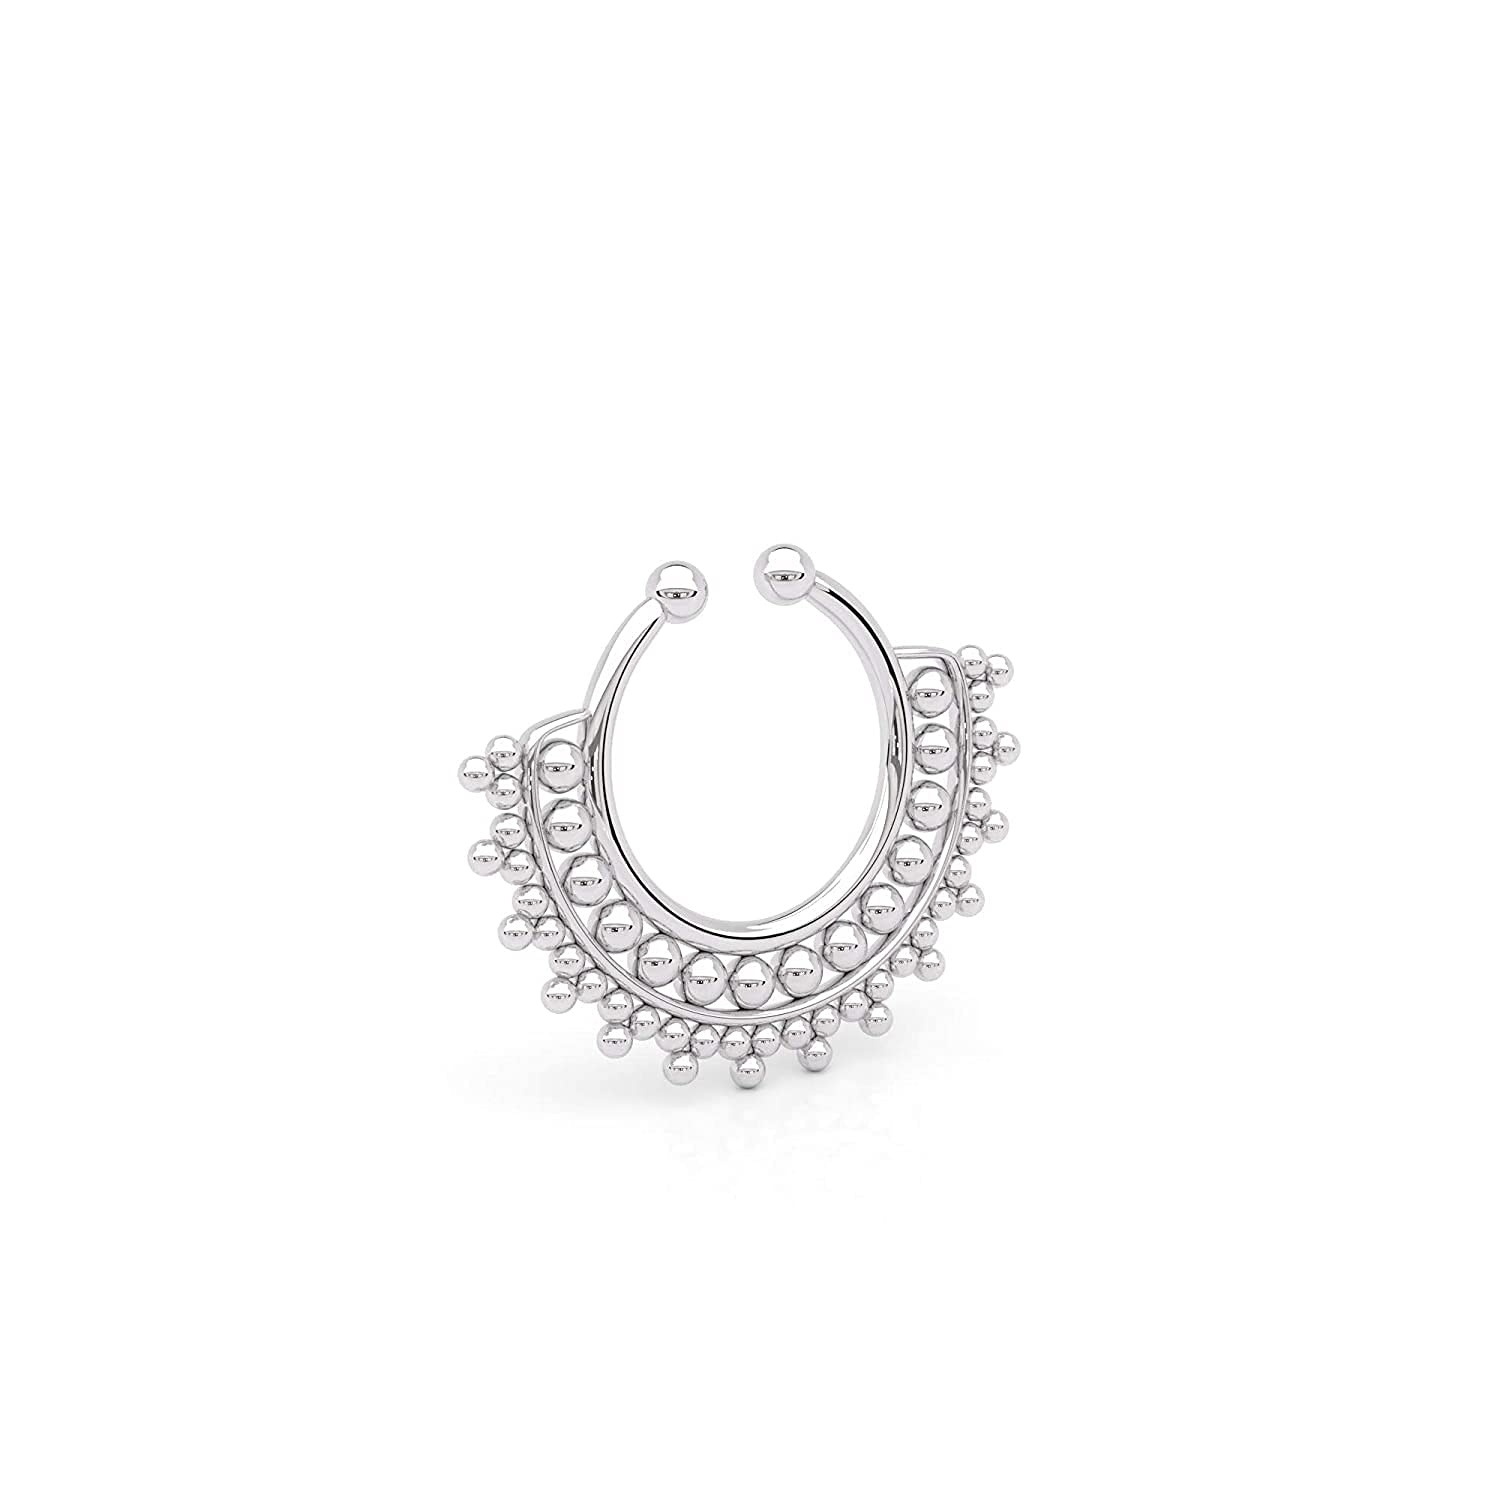 Tiny Fake Septum Safety and trust Nose Ring Sterling On Silver Faux Tribal Clip 2021 autumn and winter new